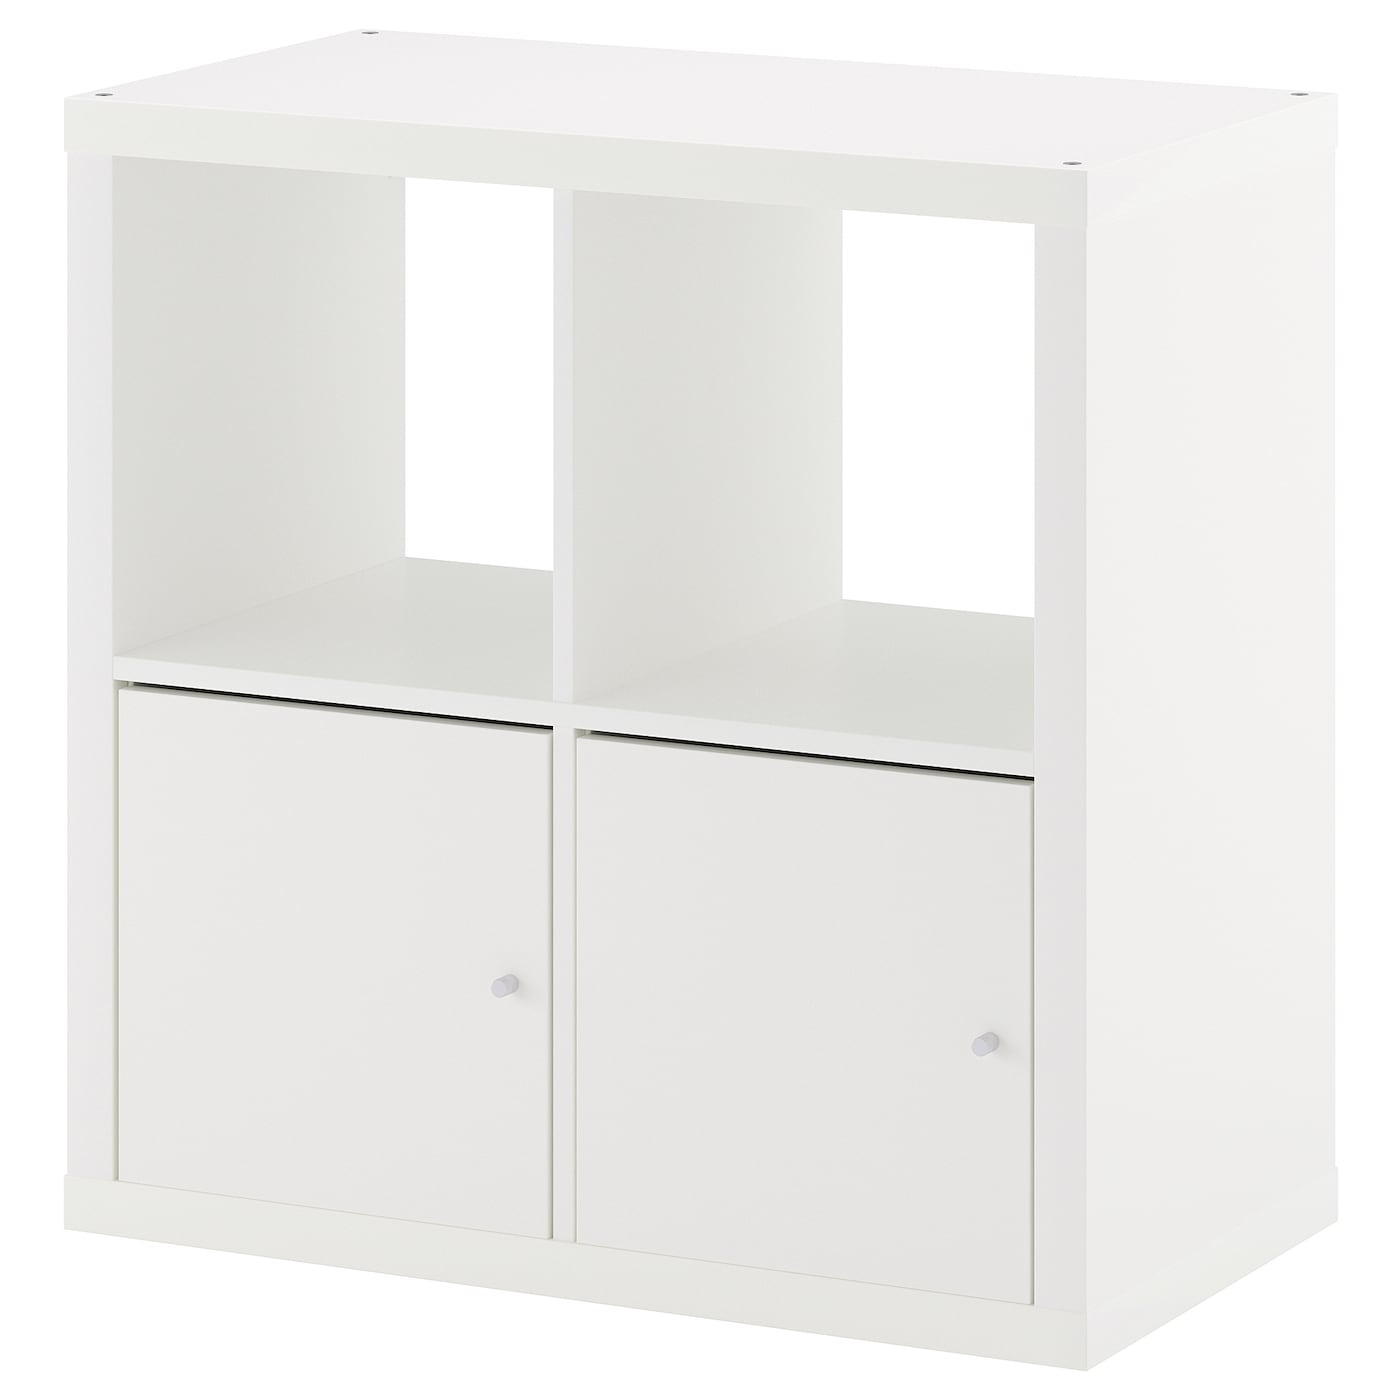 kallax shelving unit with doors white 77x77 cm ikea. Black Bedroom Furniture Sets. Home Design Ideas